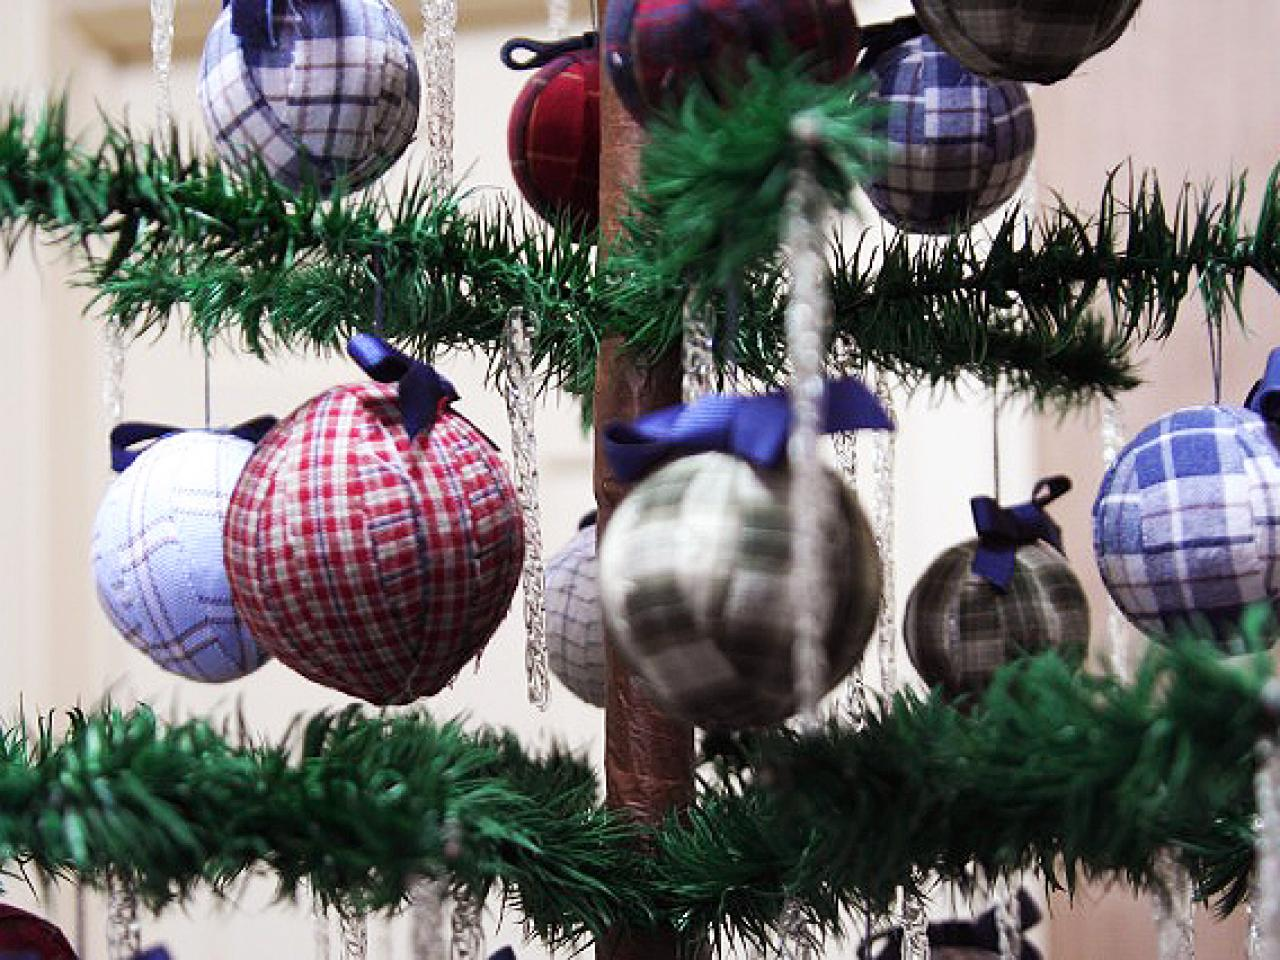 Make Christmas Ornaments From Old Shirts | HGTV